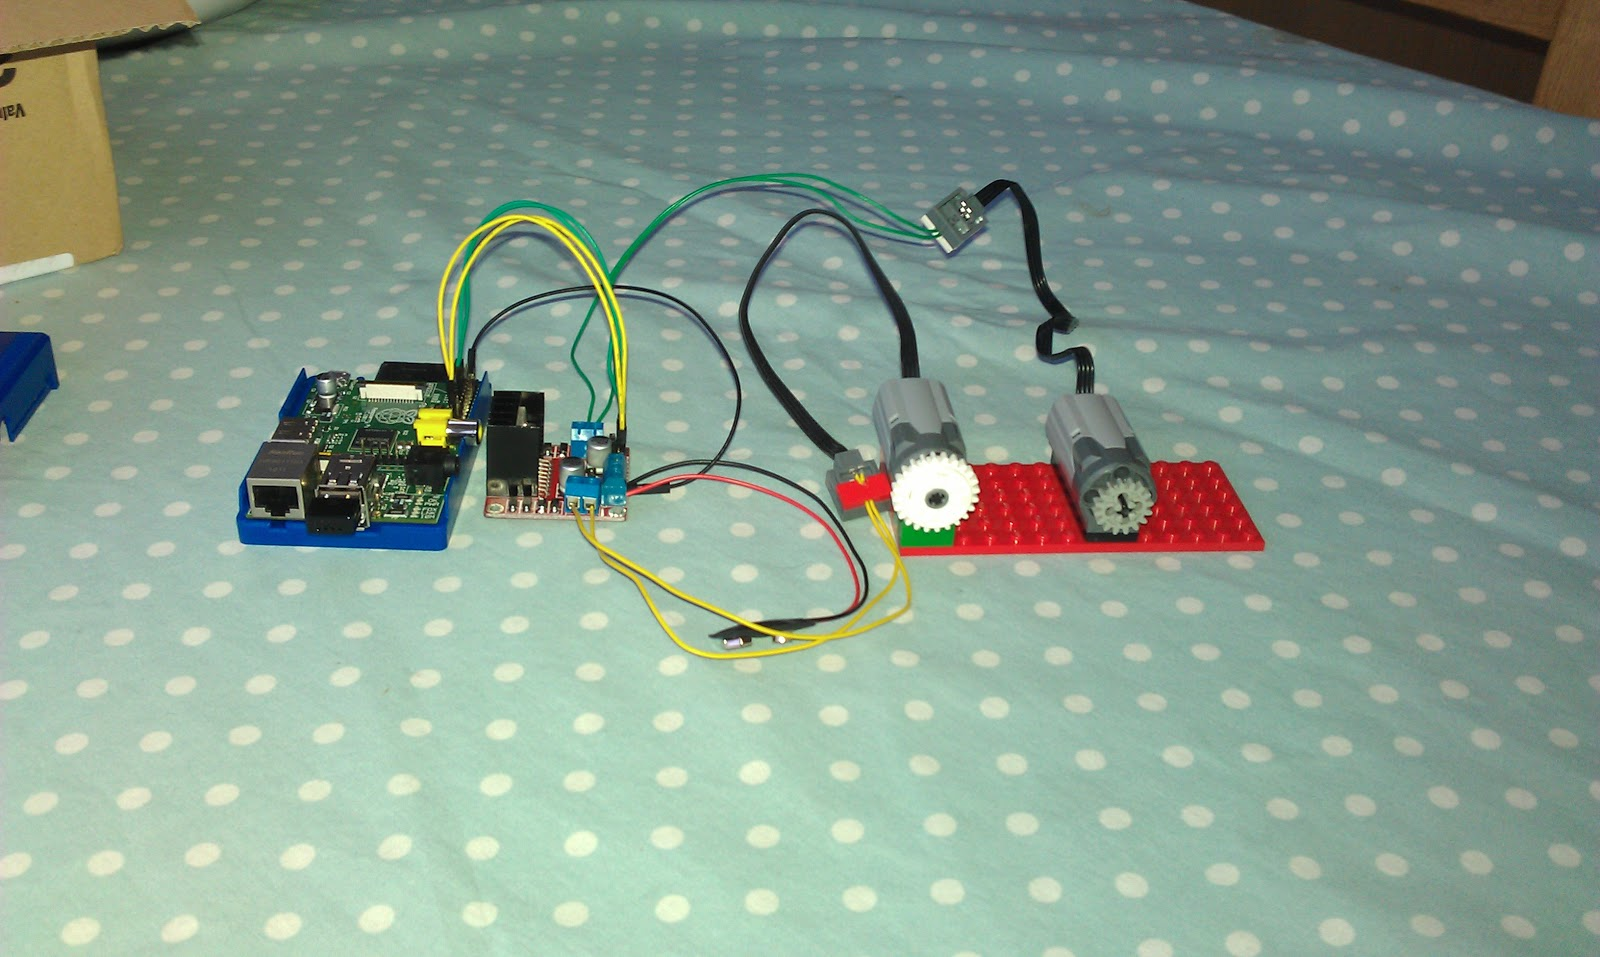 Pauls geek dad blog raspberry pi powered lego car here you can see the raspberry pi on the left 4 jumper wires going from the gpio to the motor controller inputs a jumper wire going to the motor asfbconference2016 Choice Image